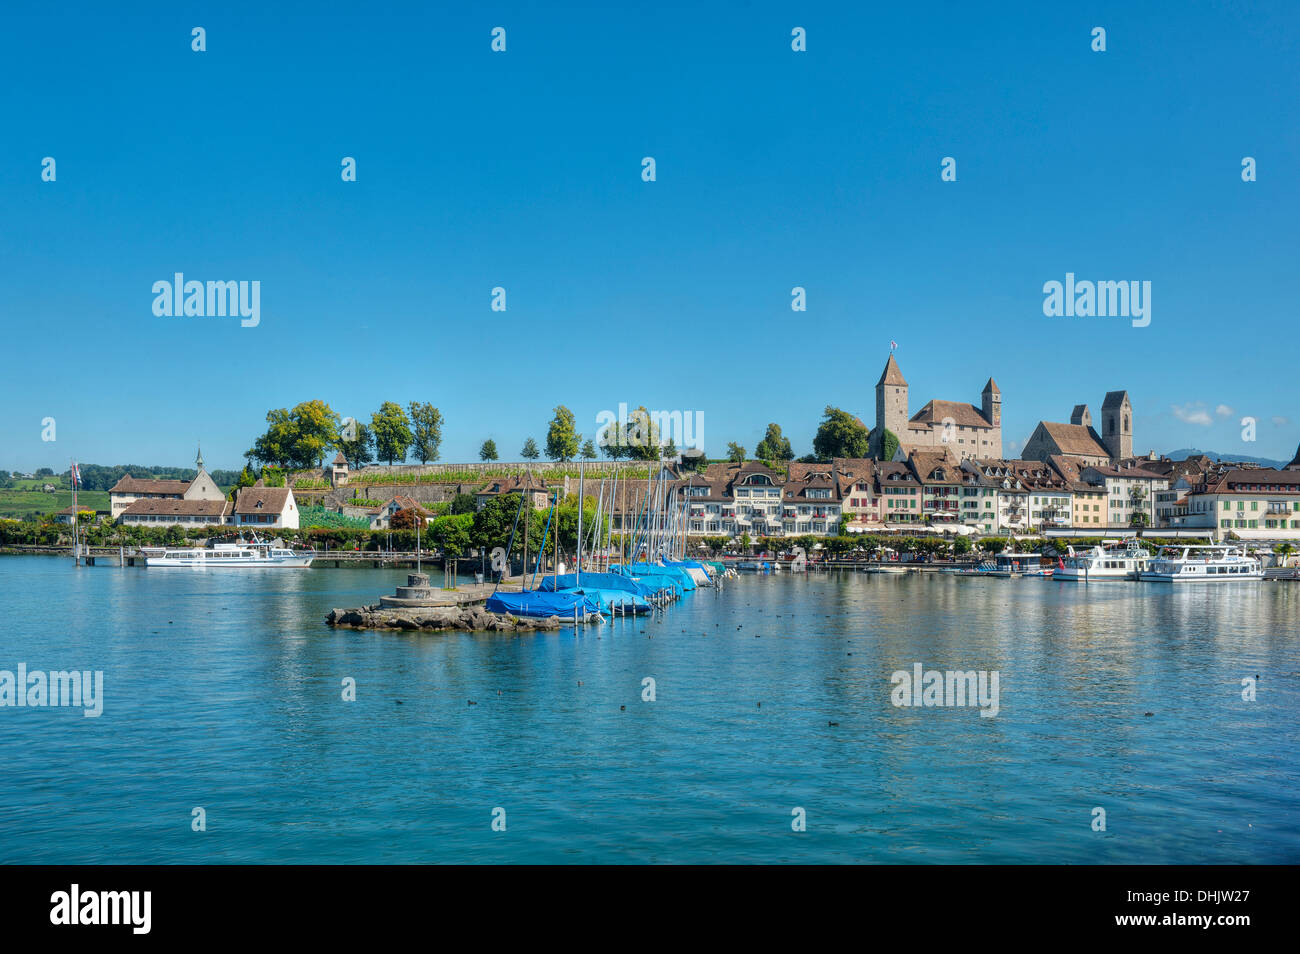 View of castle, old town and harbour, Rapperswil, Lake Zurich, St. Gallen, Switzerland, Europe - Stock Image